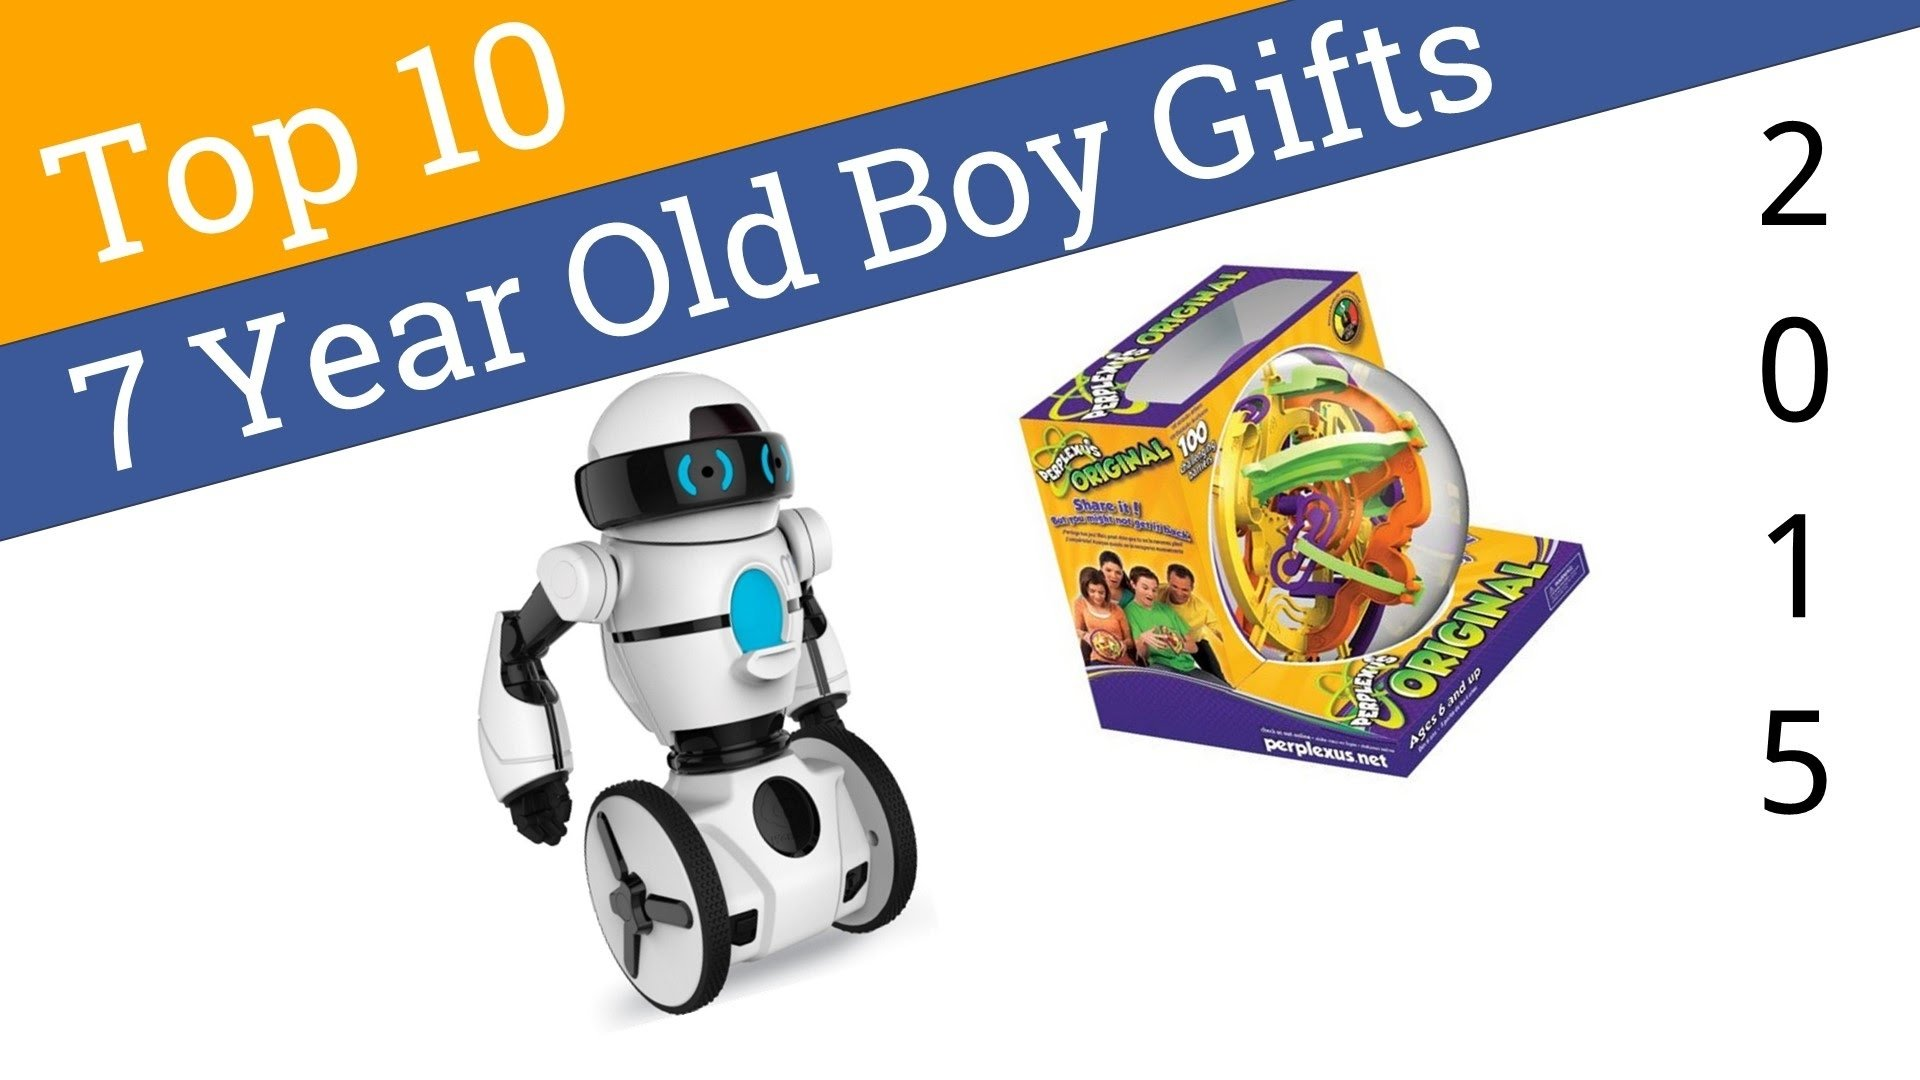 10 Lovable Gift Ideas For 7 Year Old Boy